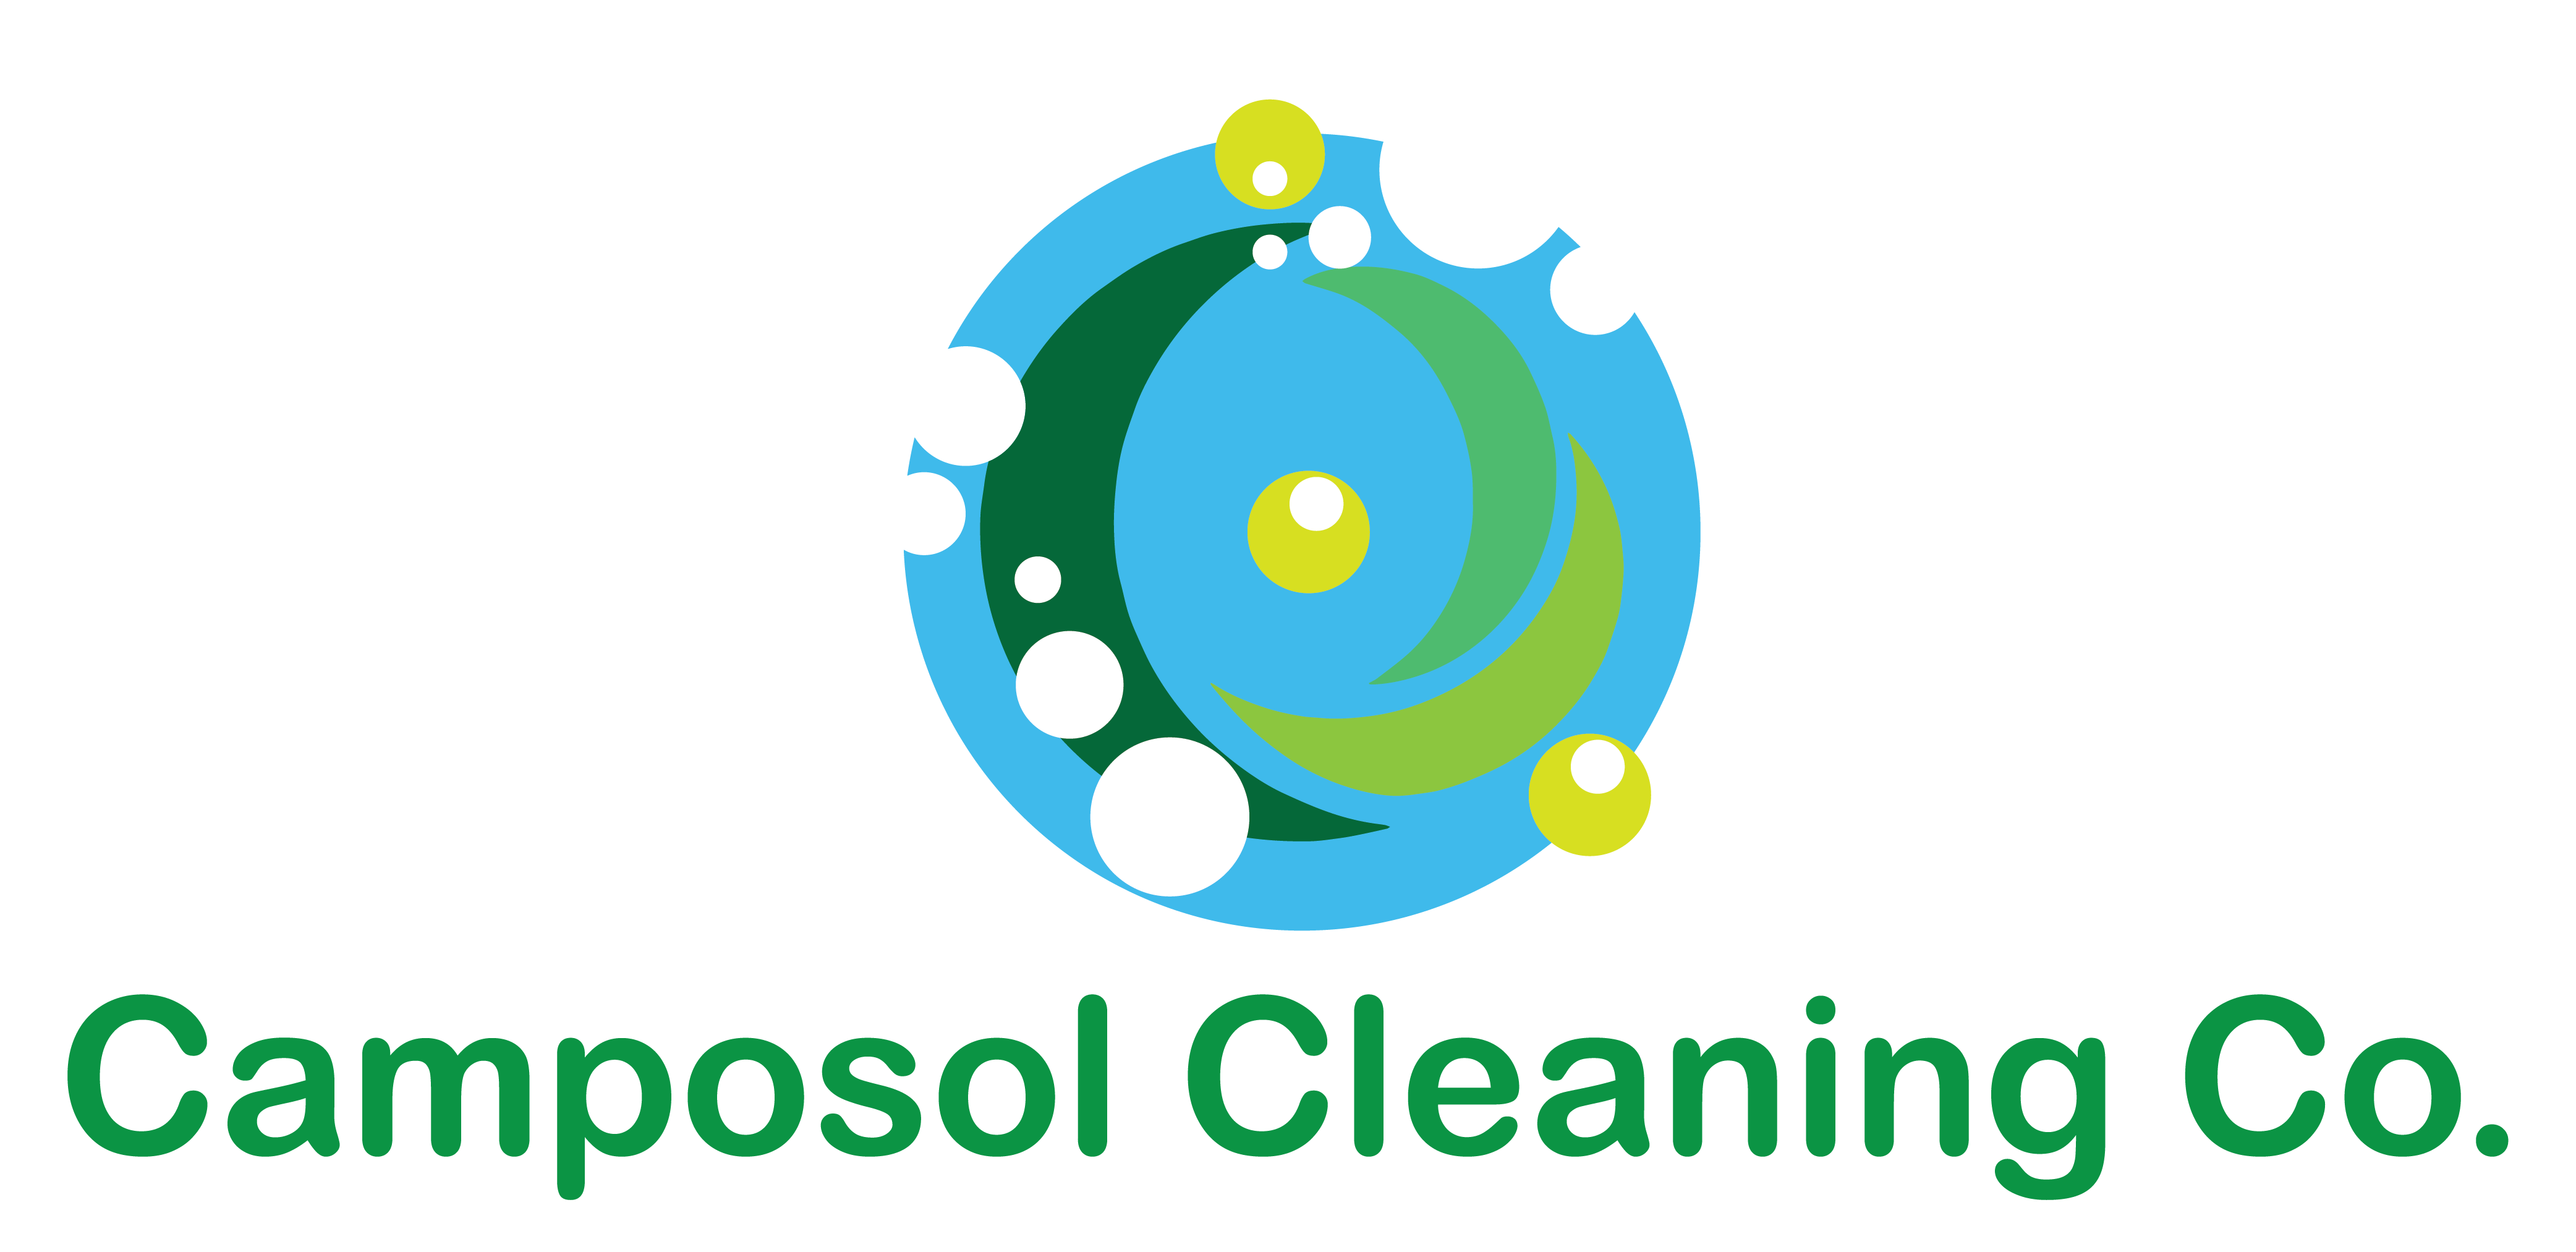 camposol cleaning company